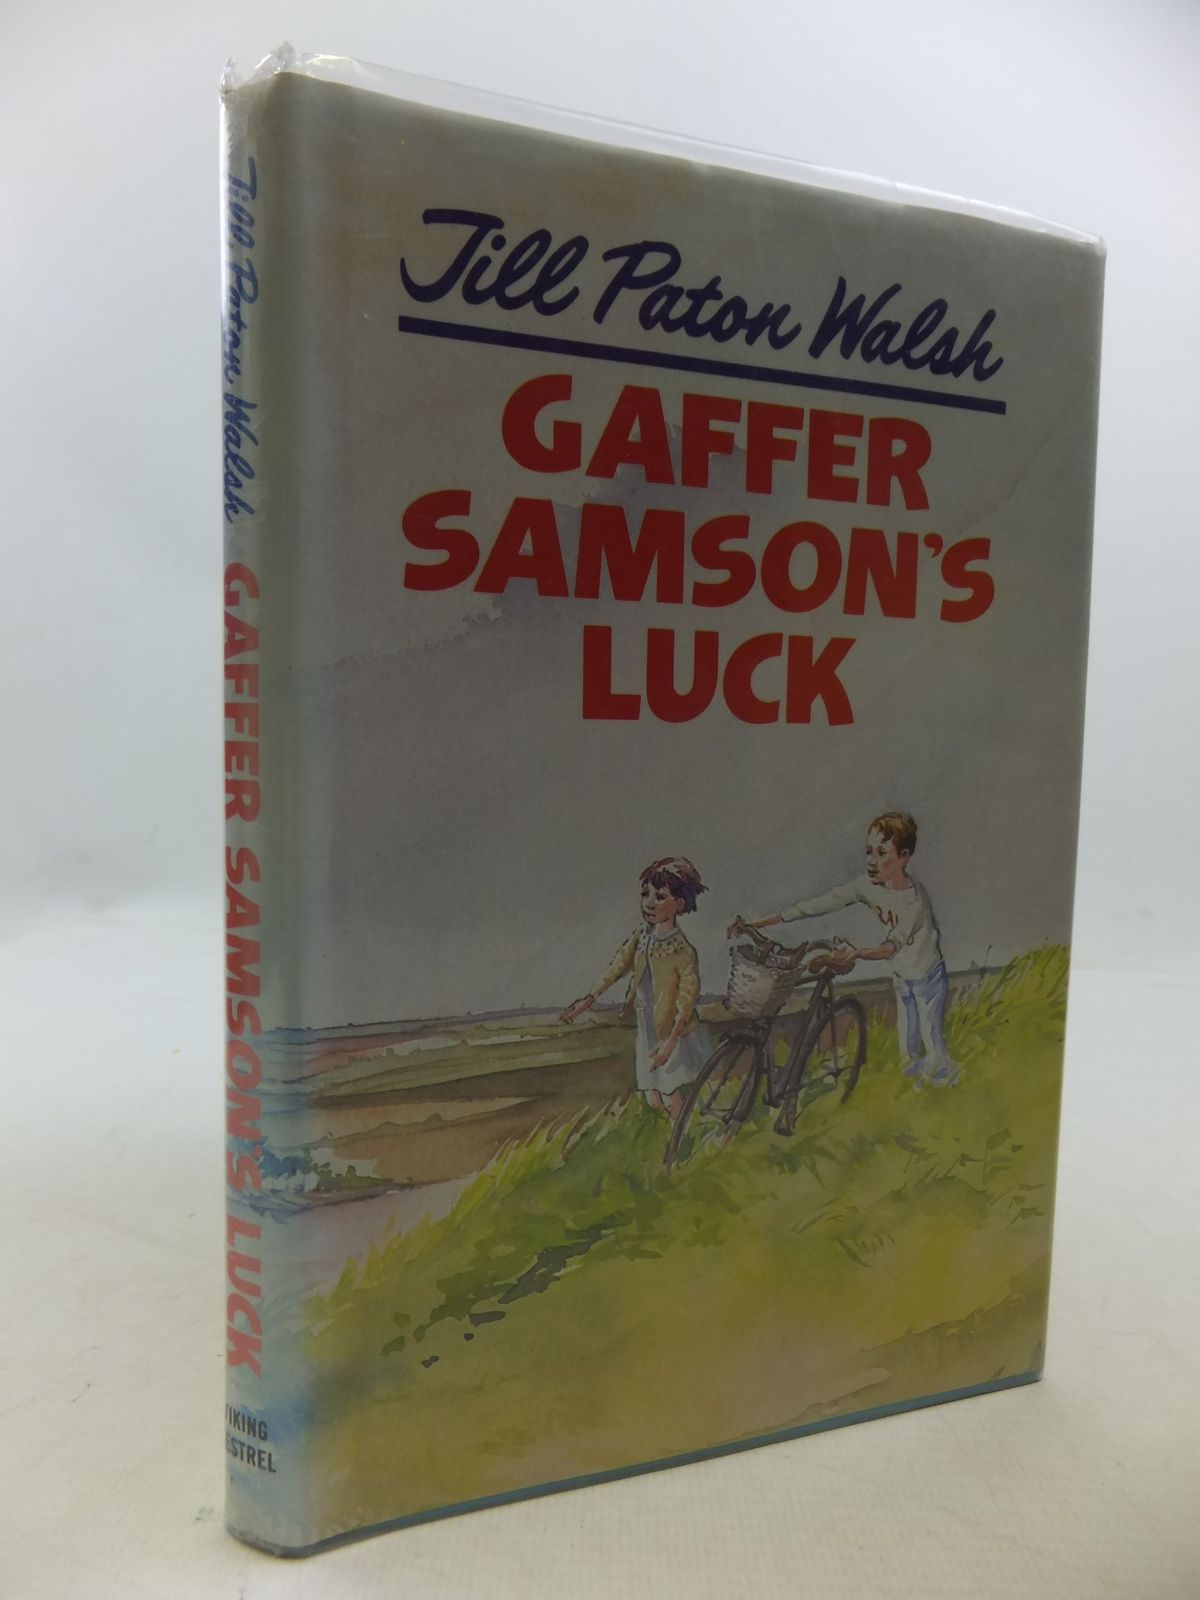 Photo of GAFFER SAMSON'S LUCK written by Walsh, Jill Paton illustrated by Cole, Brock published by Viking Kestrel (STOCK CODE: 2112398)  for sale by Stella & Rose's Books